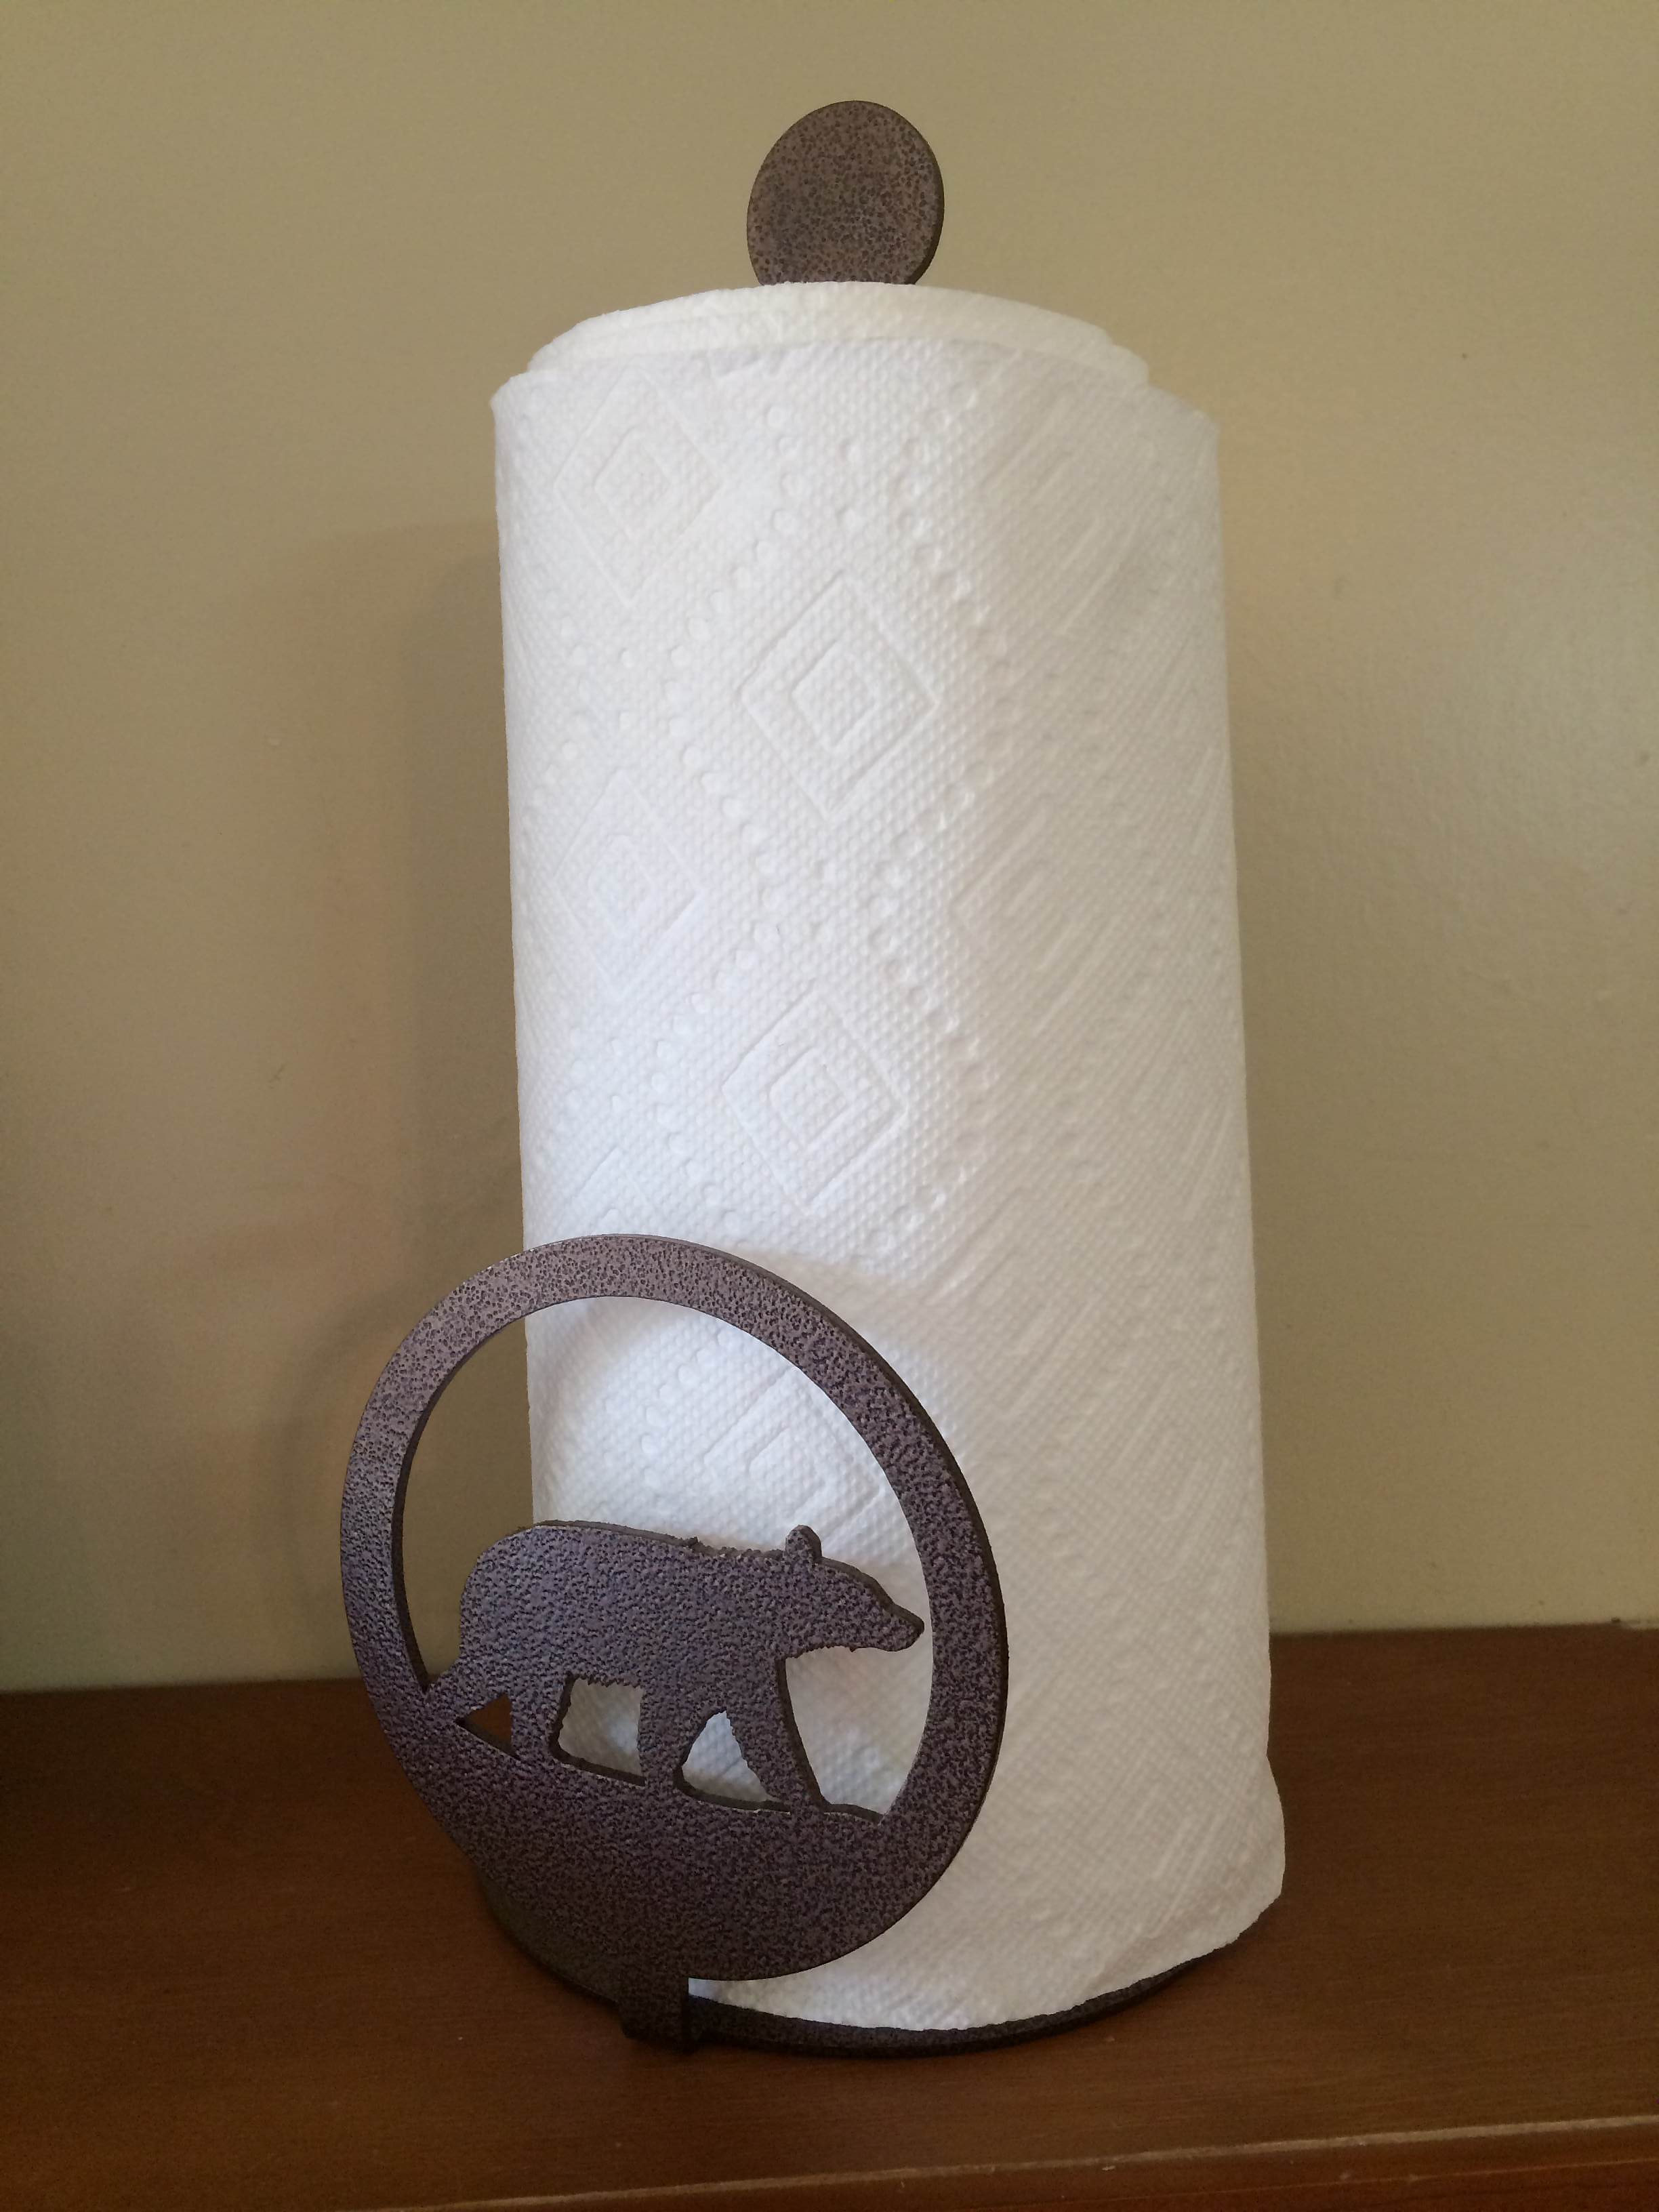 beardeer paper towel holder